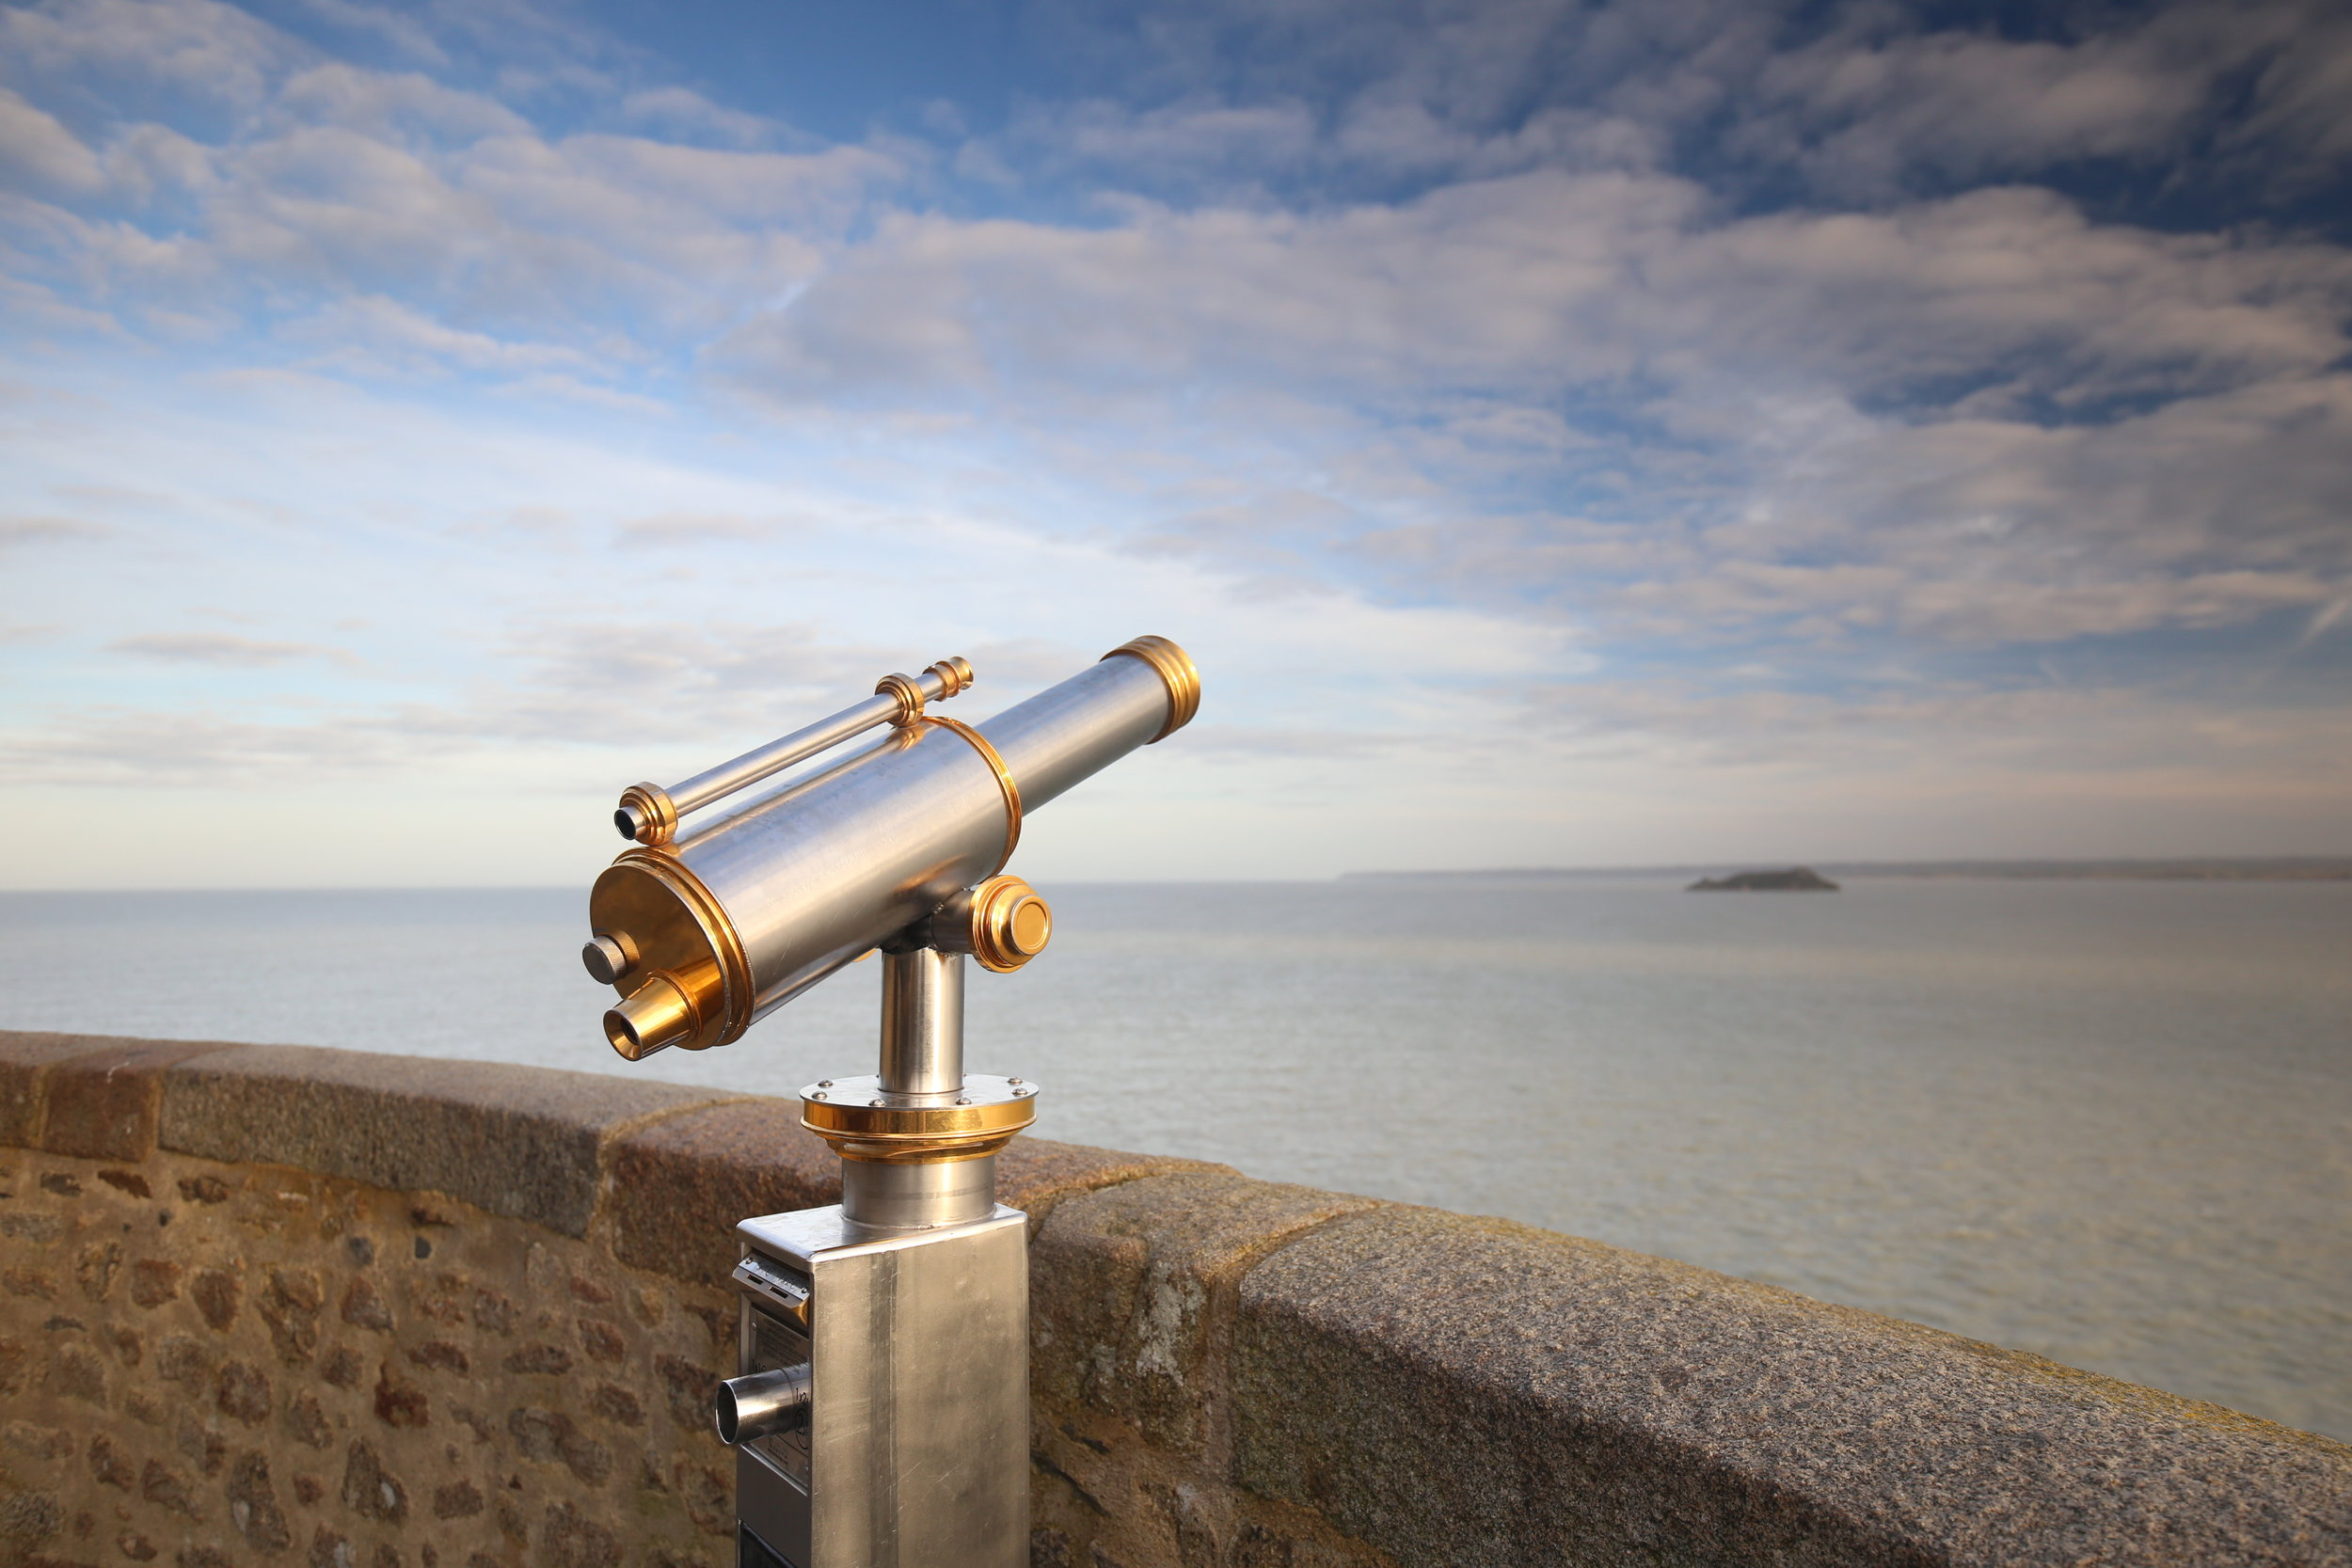 A silver telescope looking out over the sea from the stone walls of Mont Saint Michel.